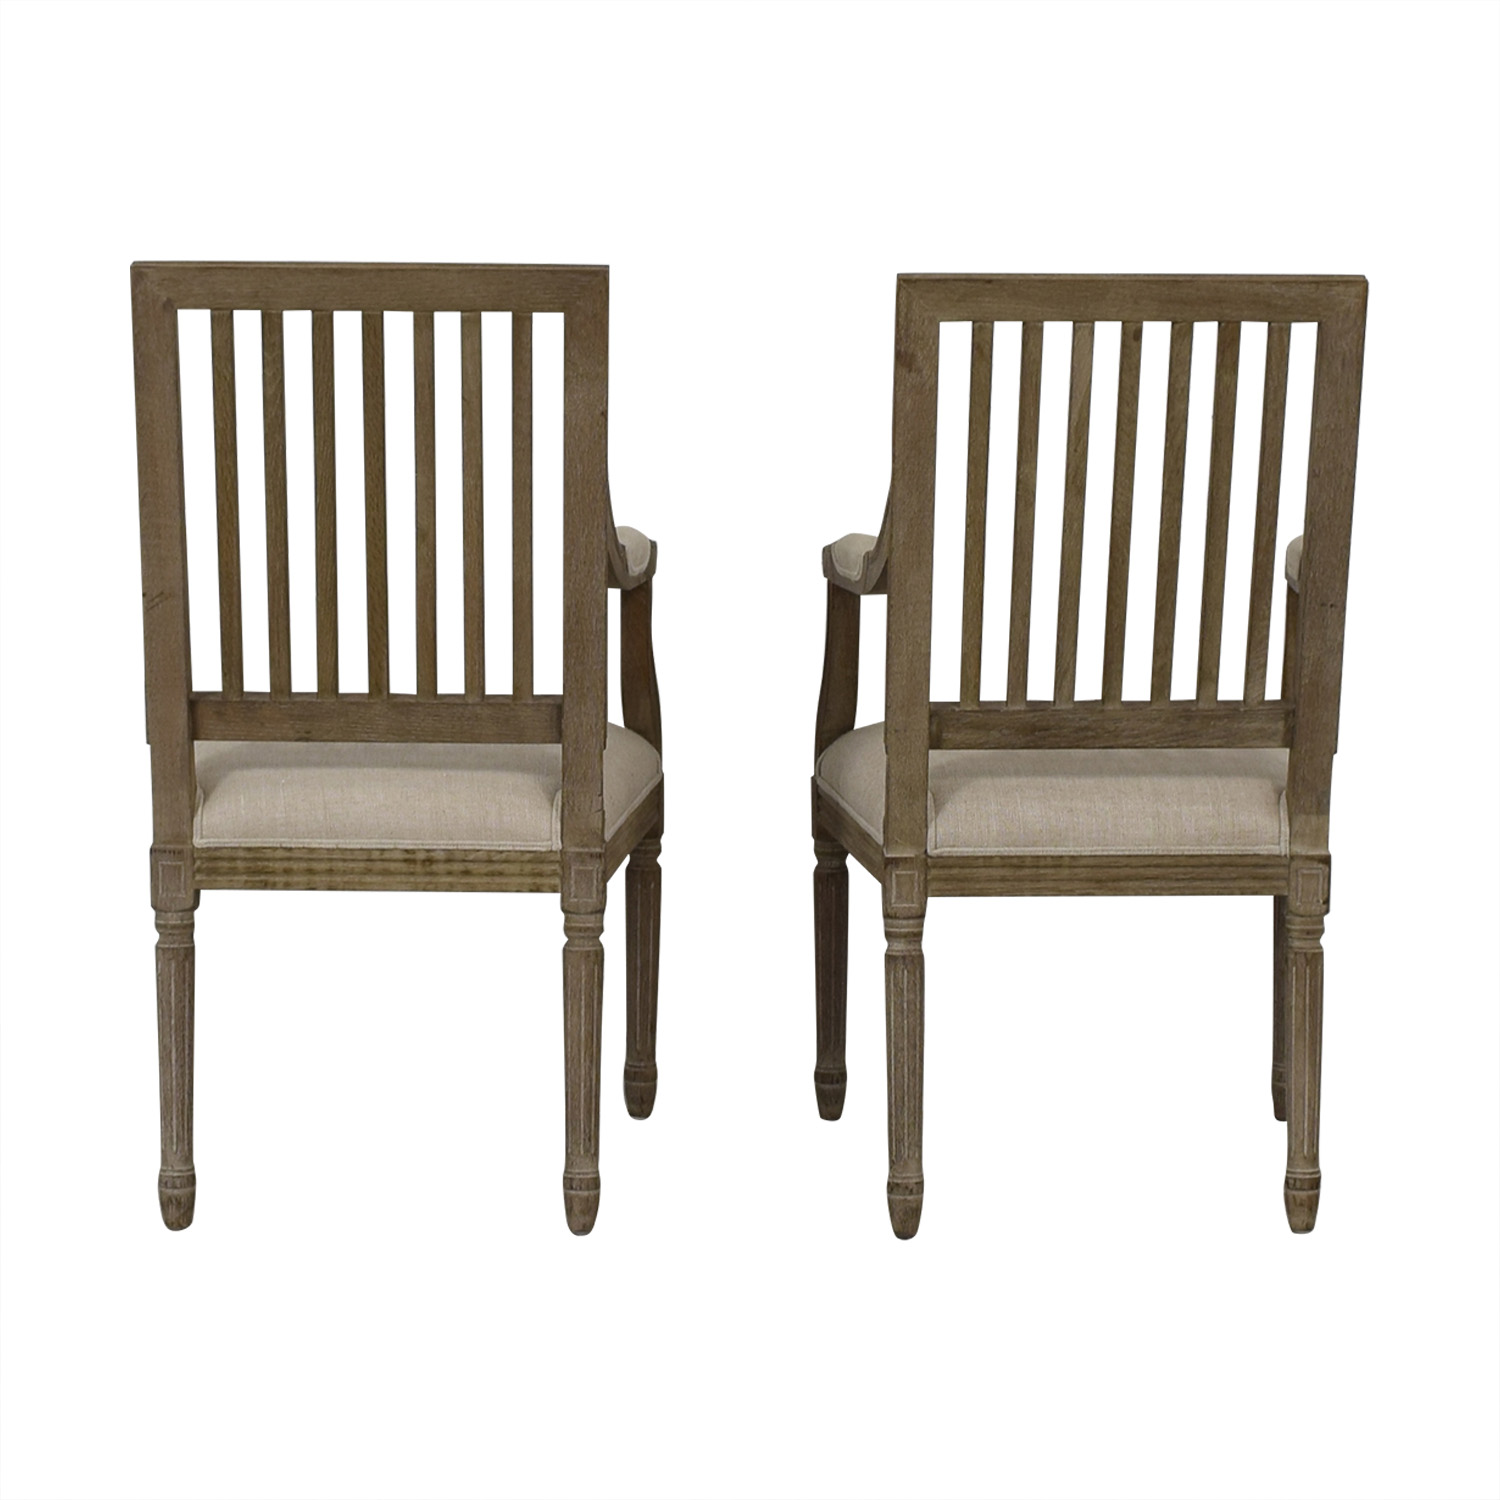 Restoration Hardware Restoration Hardware Spindle Back Dining Chairs nyc